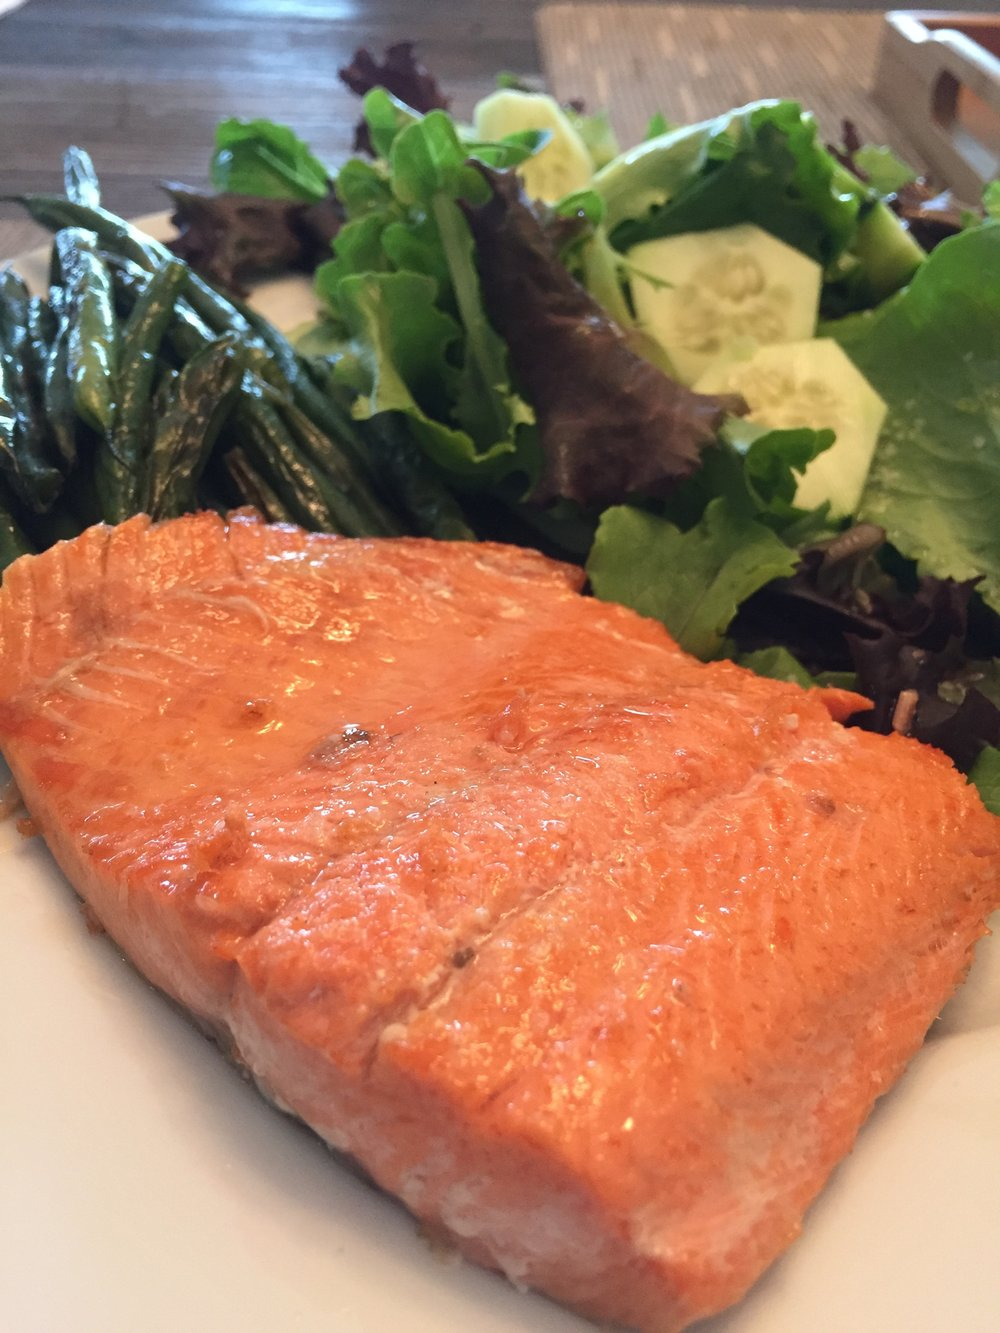 - Bottom line? This is a super quick and easy way of preparing salmon, which also happens to be a weekly staple in our house.